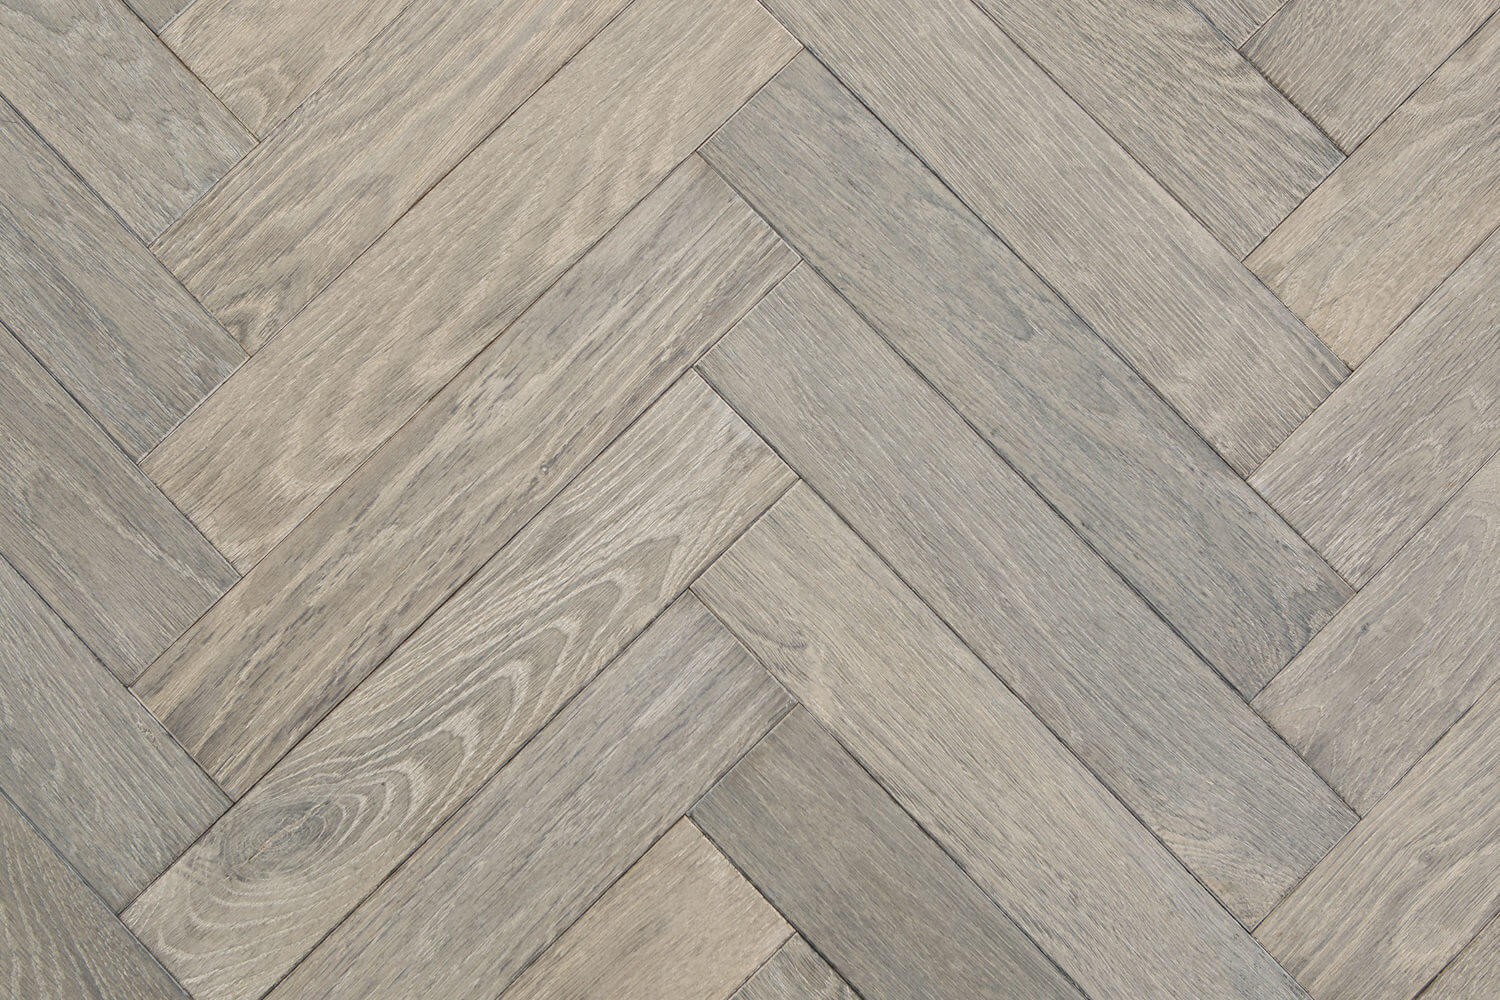 3 Oak Floor Product Silver Washed Parquet